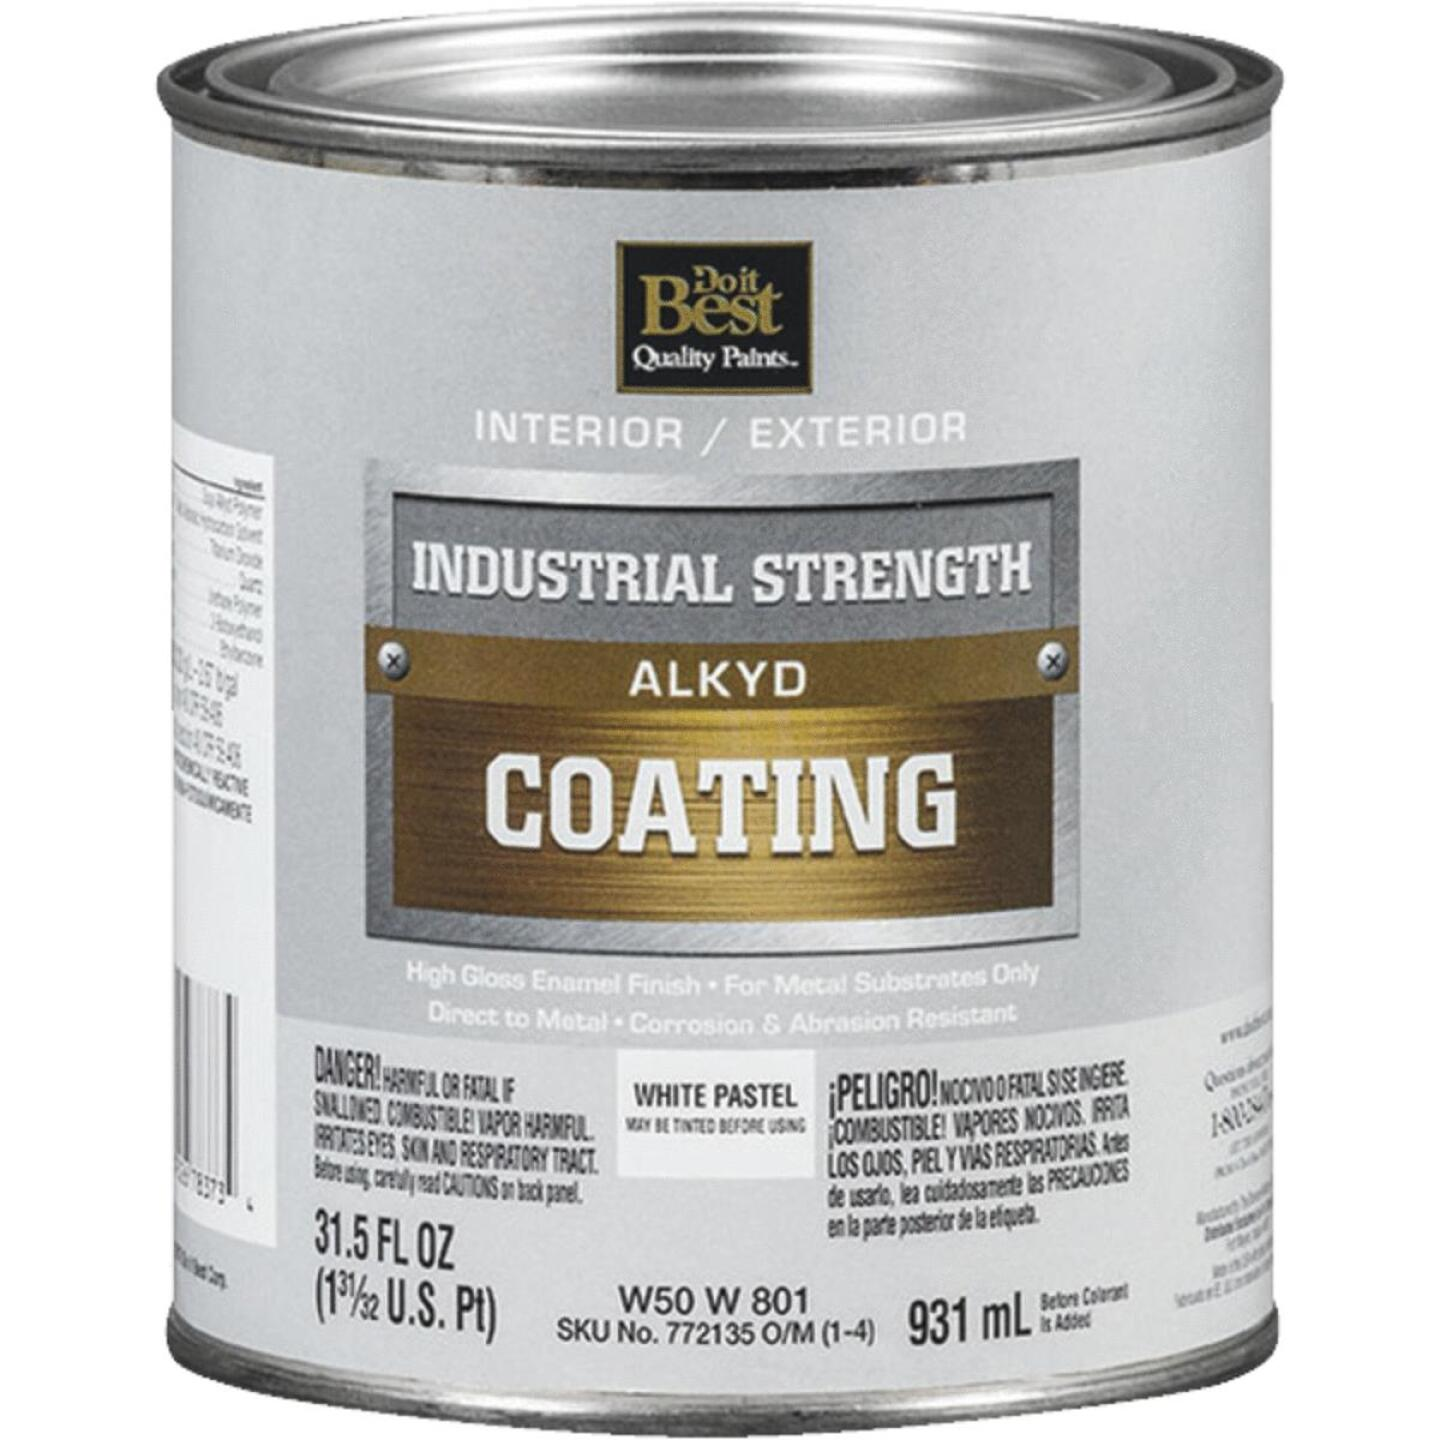 Do it Best Pastel Base Alkyd Industrial Coating, White, 1 Qt. Image 1